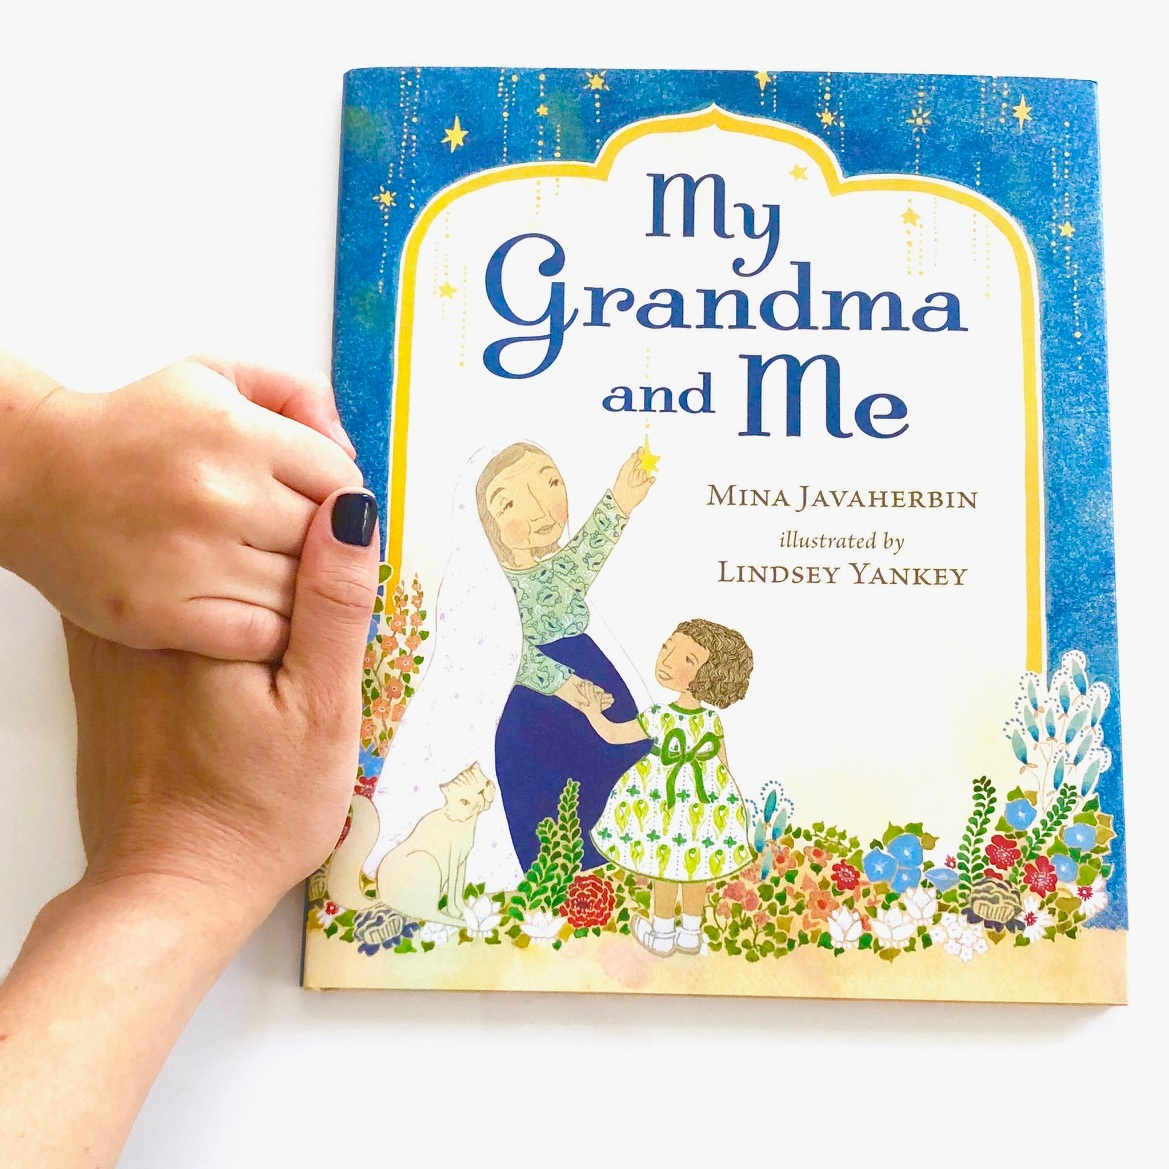 My Grandma and Me by Mina Javaherbin and Lindsey Yankey